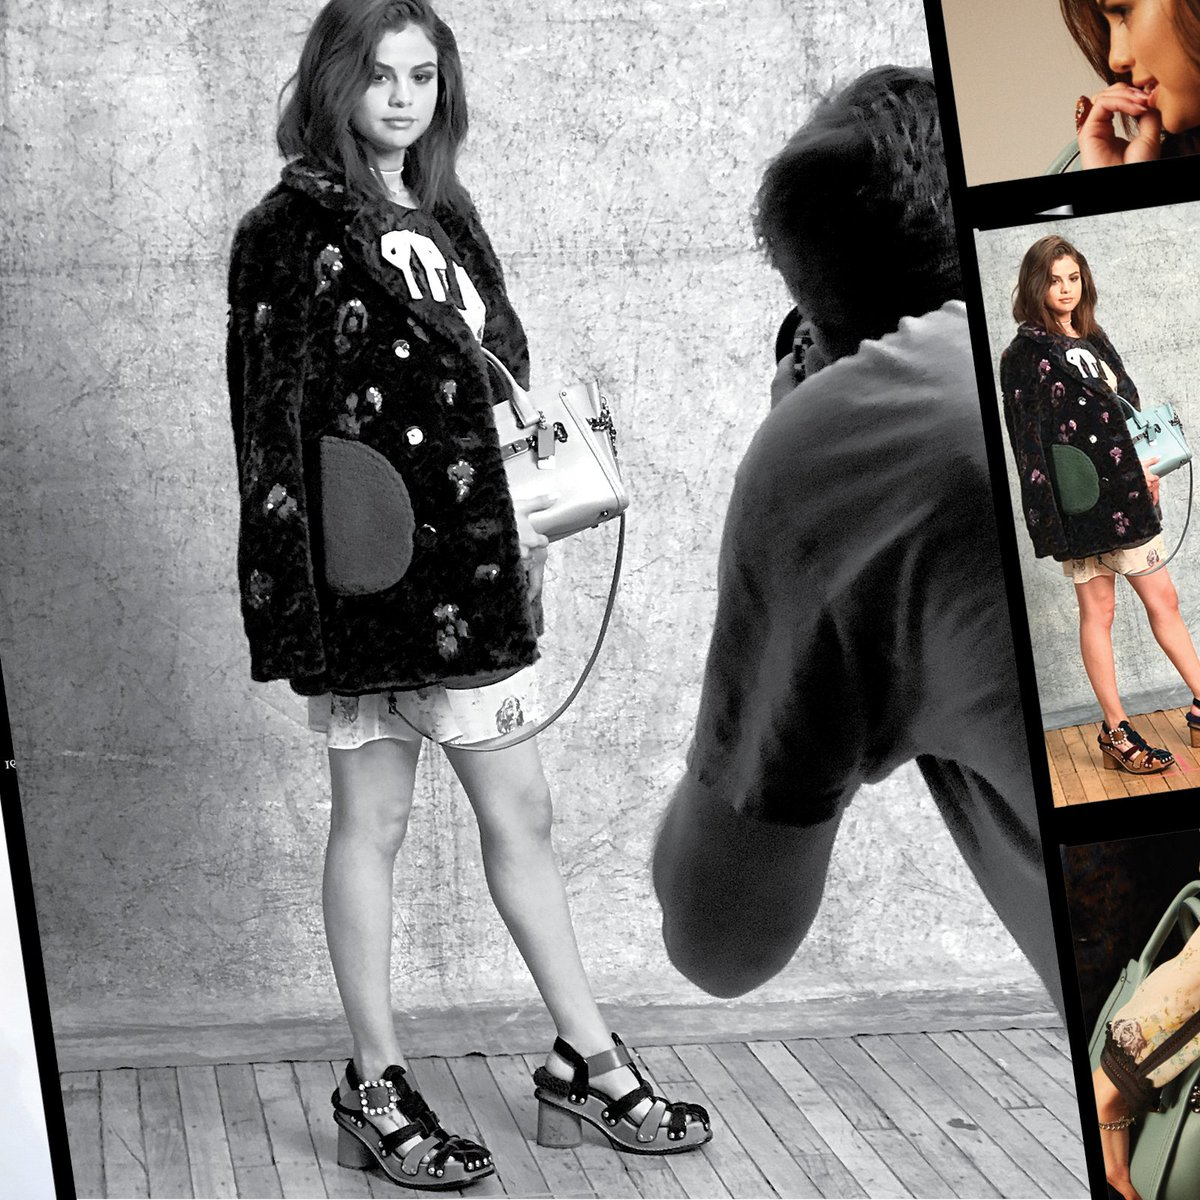 Behind-the-scenes Swagger with #SelenaGomez.  #CoachxSelena #CoachNY #WhatsYourSwagger